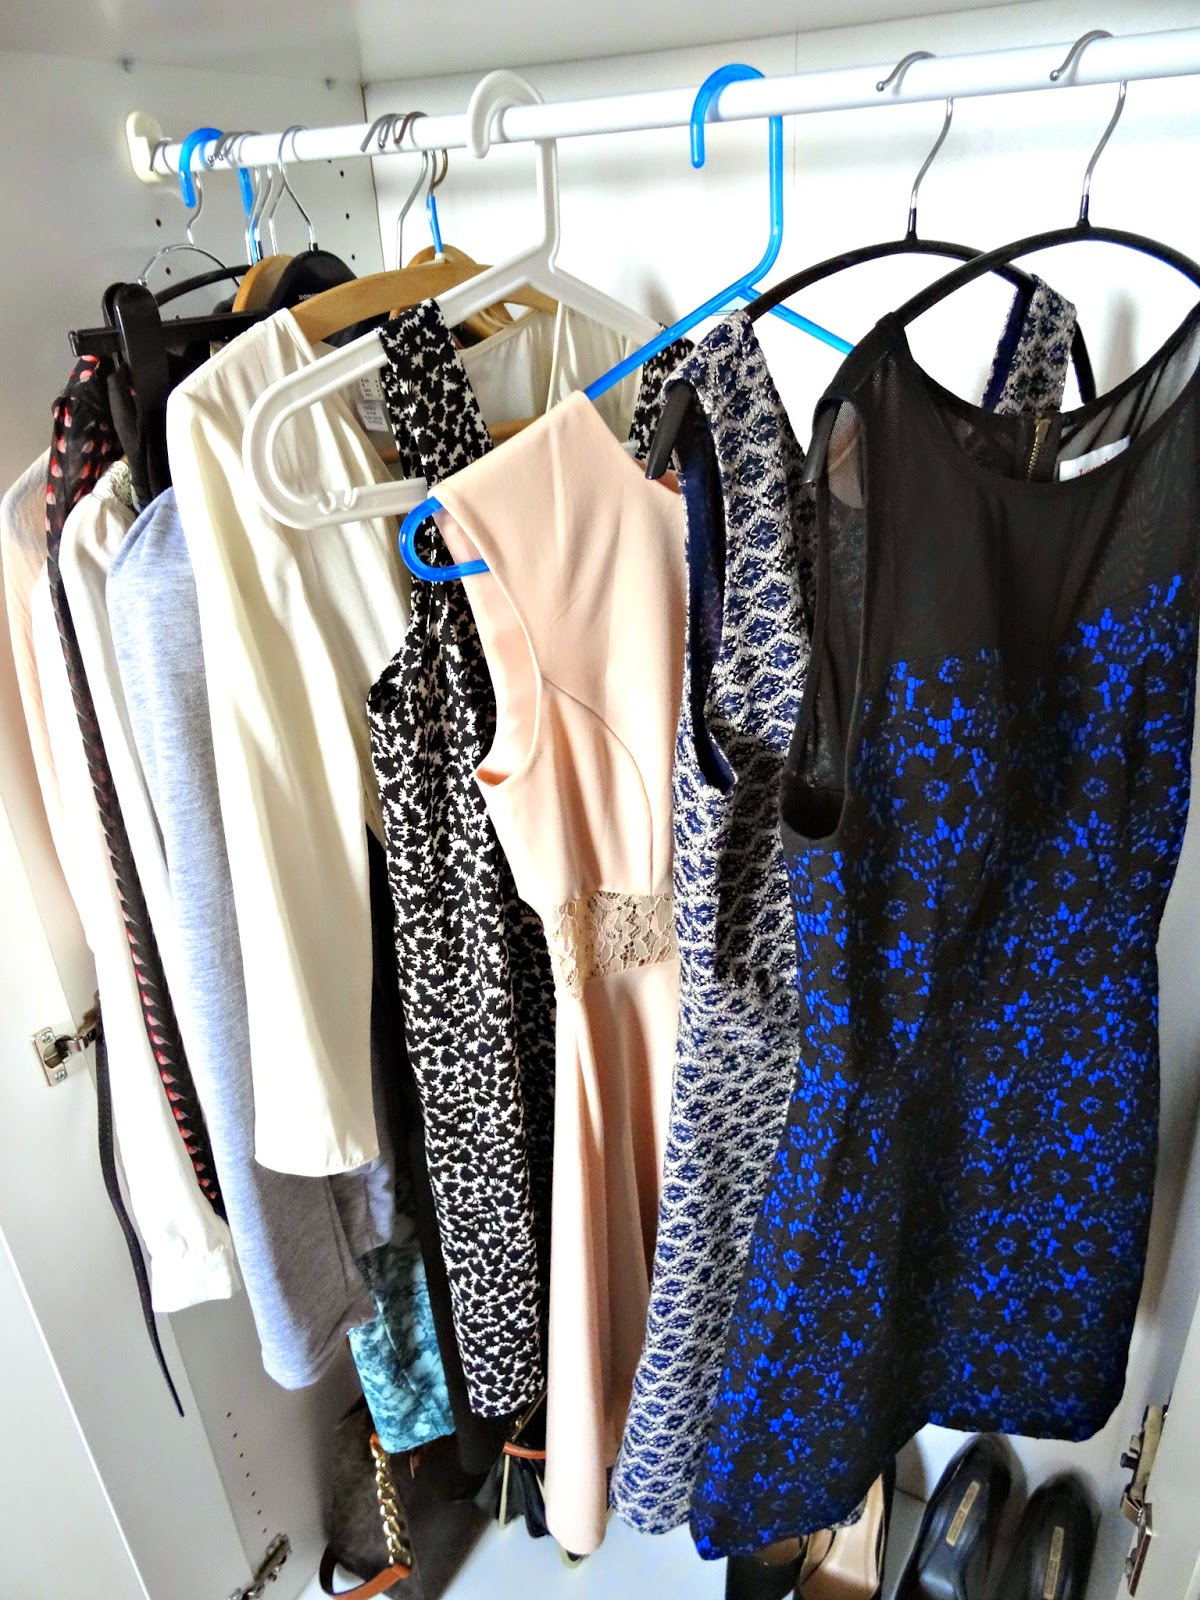 How to hang up dresses and blouses